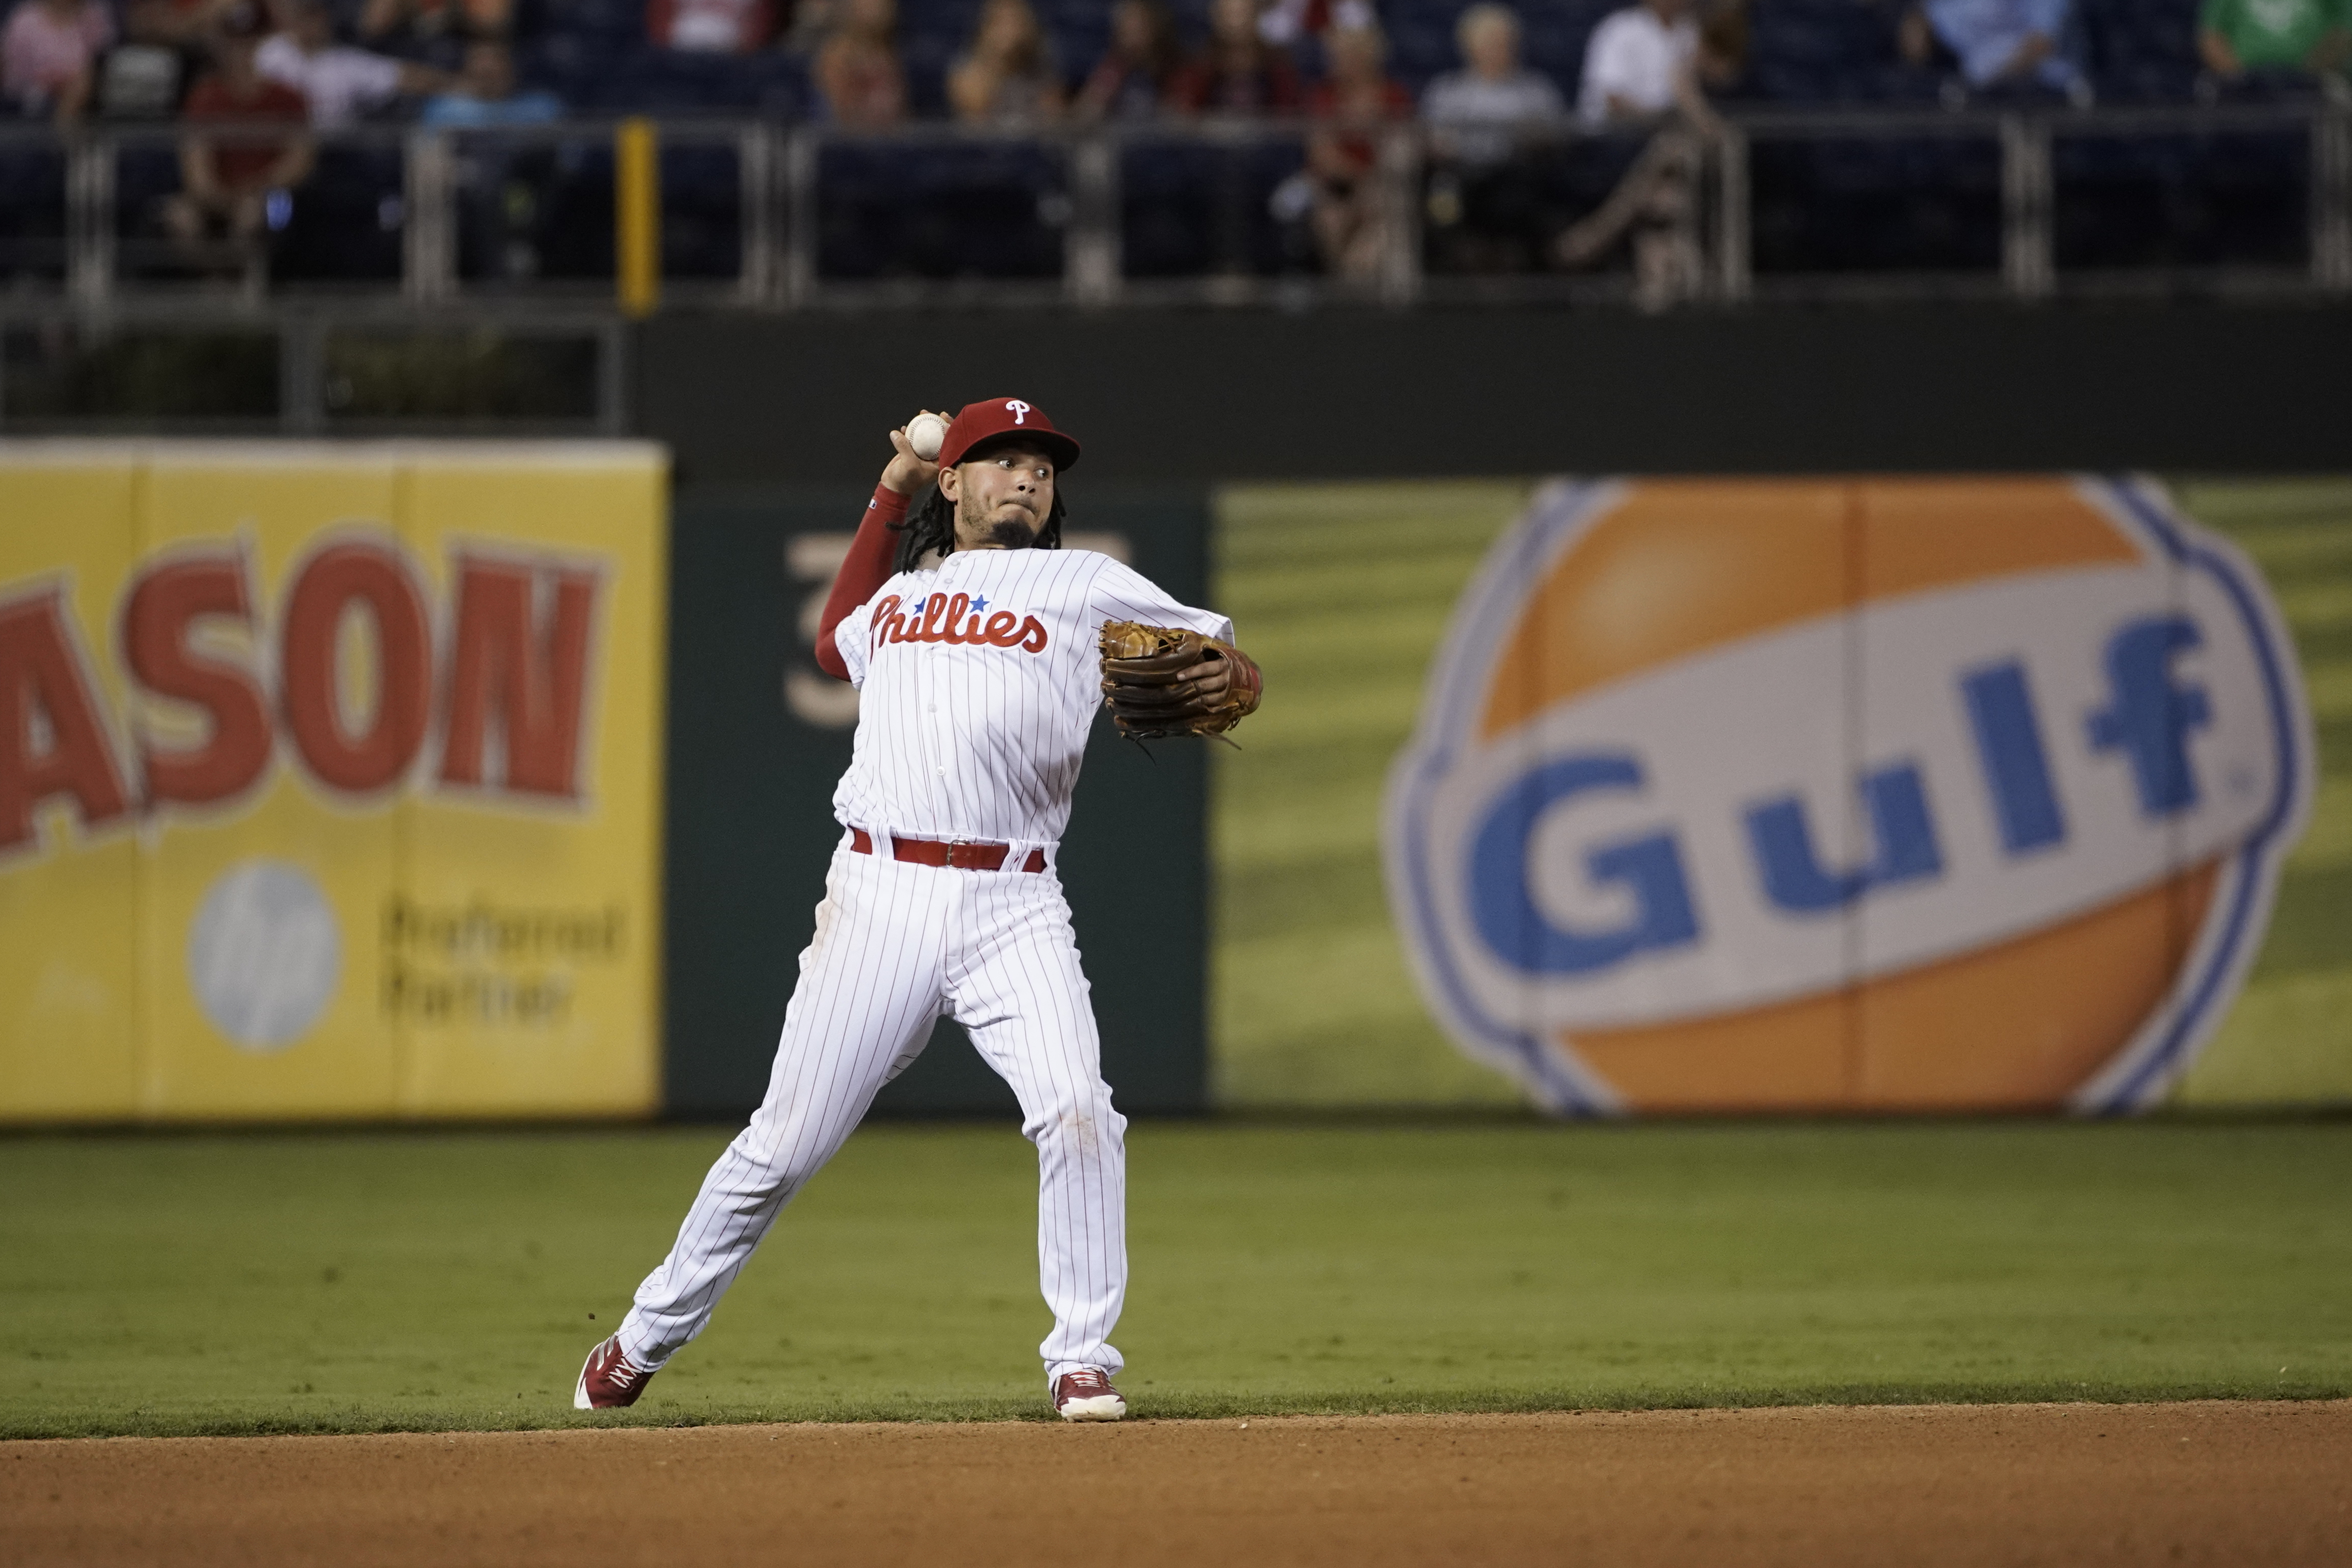 Shortstop Freddy Galvis made a pinch-hitting appearance Sunday to become the first Phillies player to participate in all 162 games since Ryan Howard in 2008. (AP Photo/Matt Slocum)